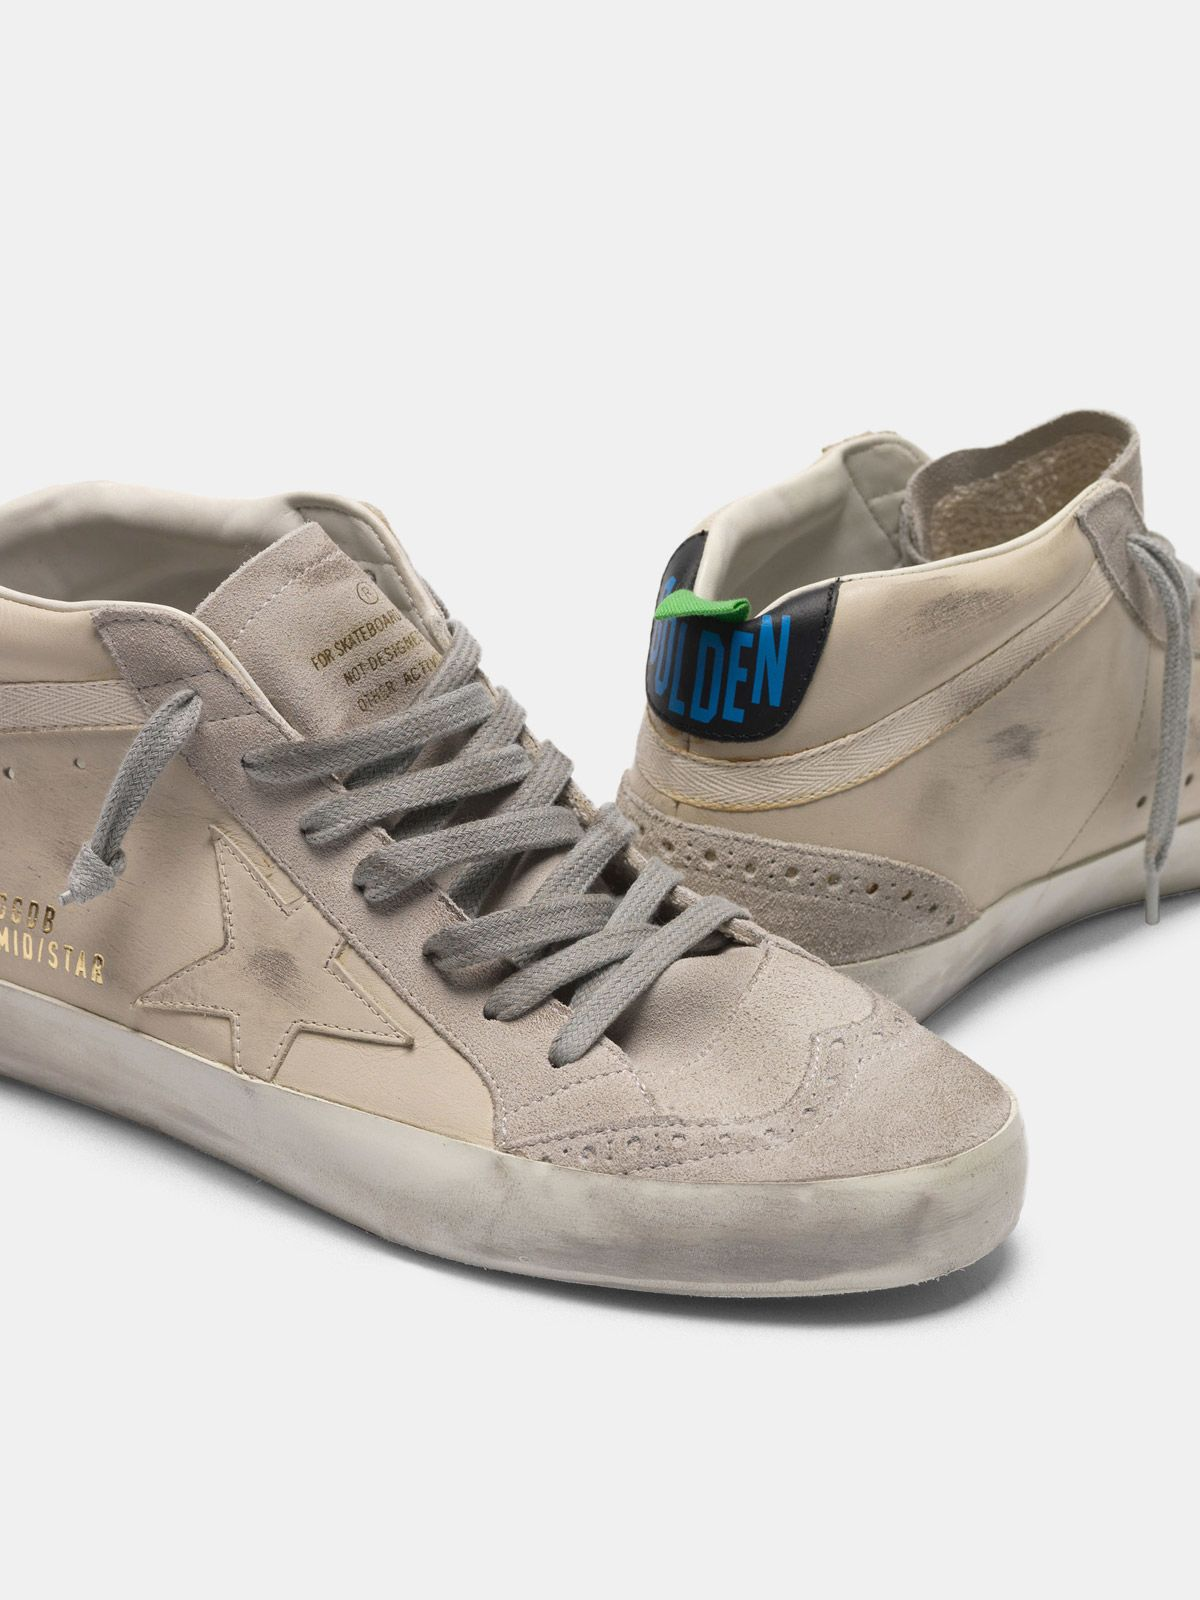 Golden Goose - Mid Star sneakers in smooth leather and suede in